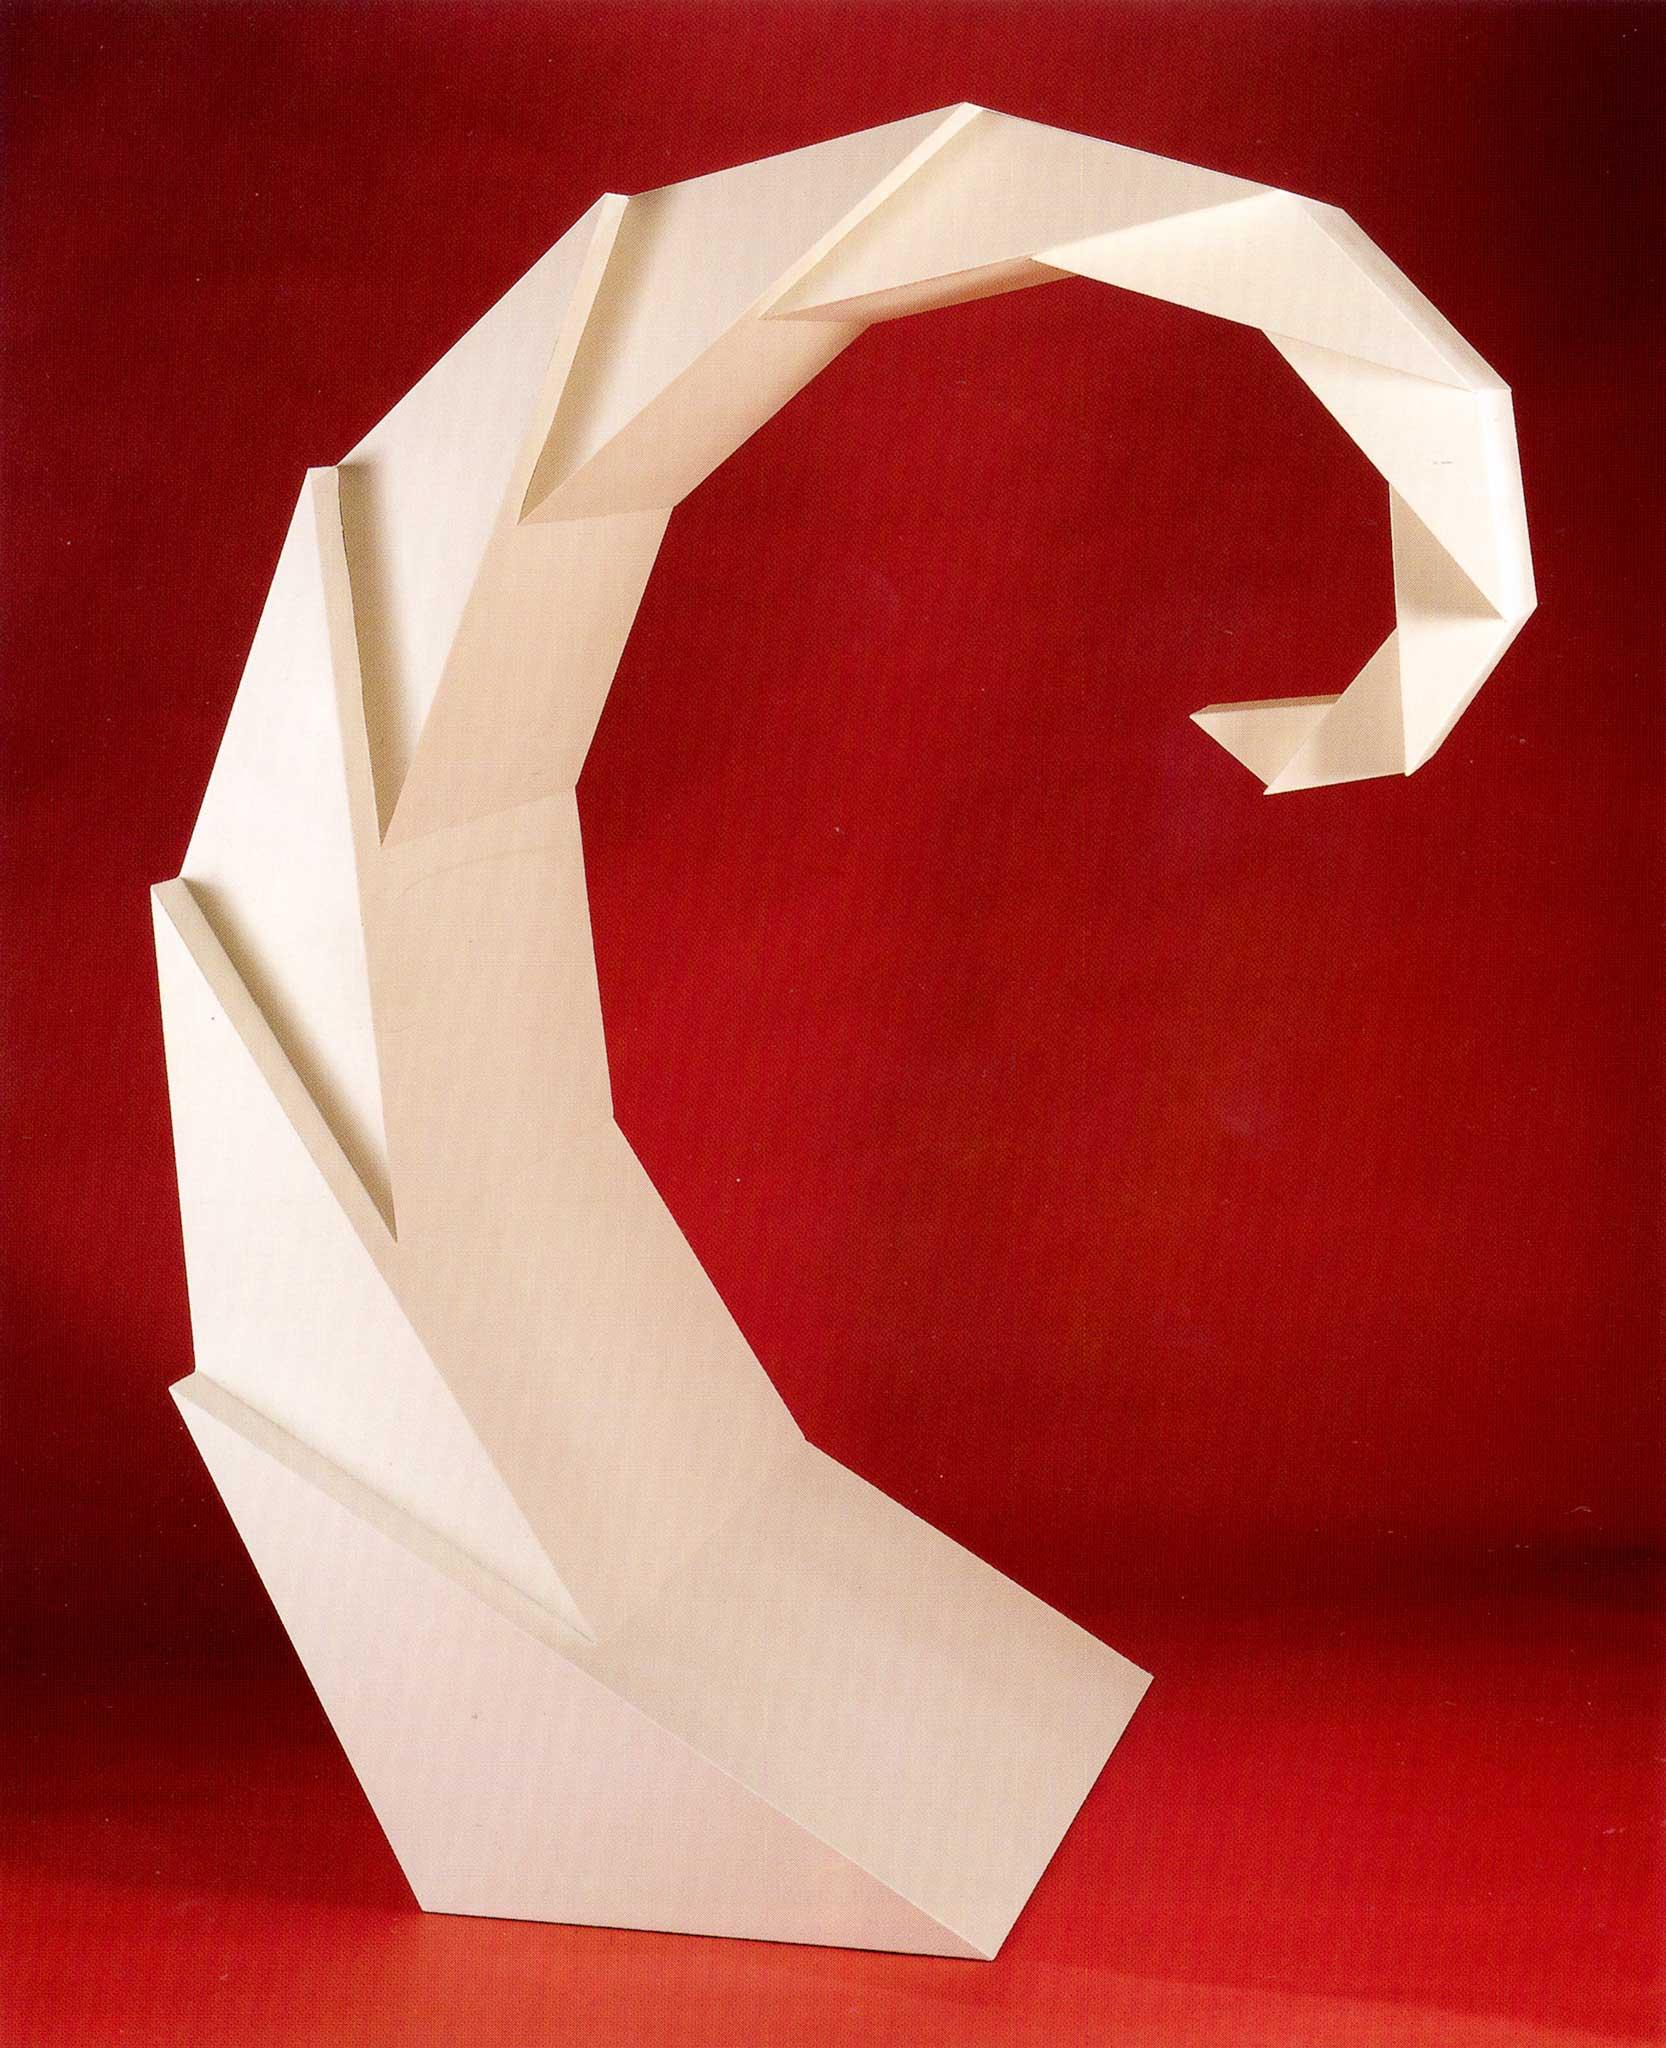 white geometric, faceted spiraling sculpture with a red background